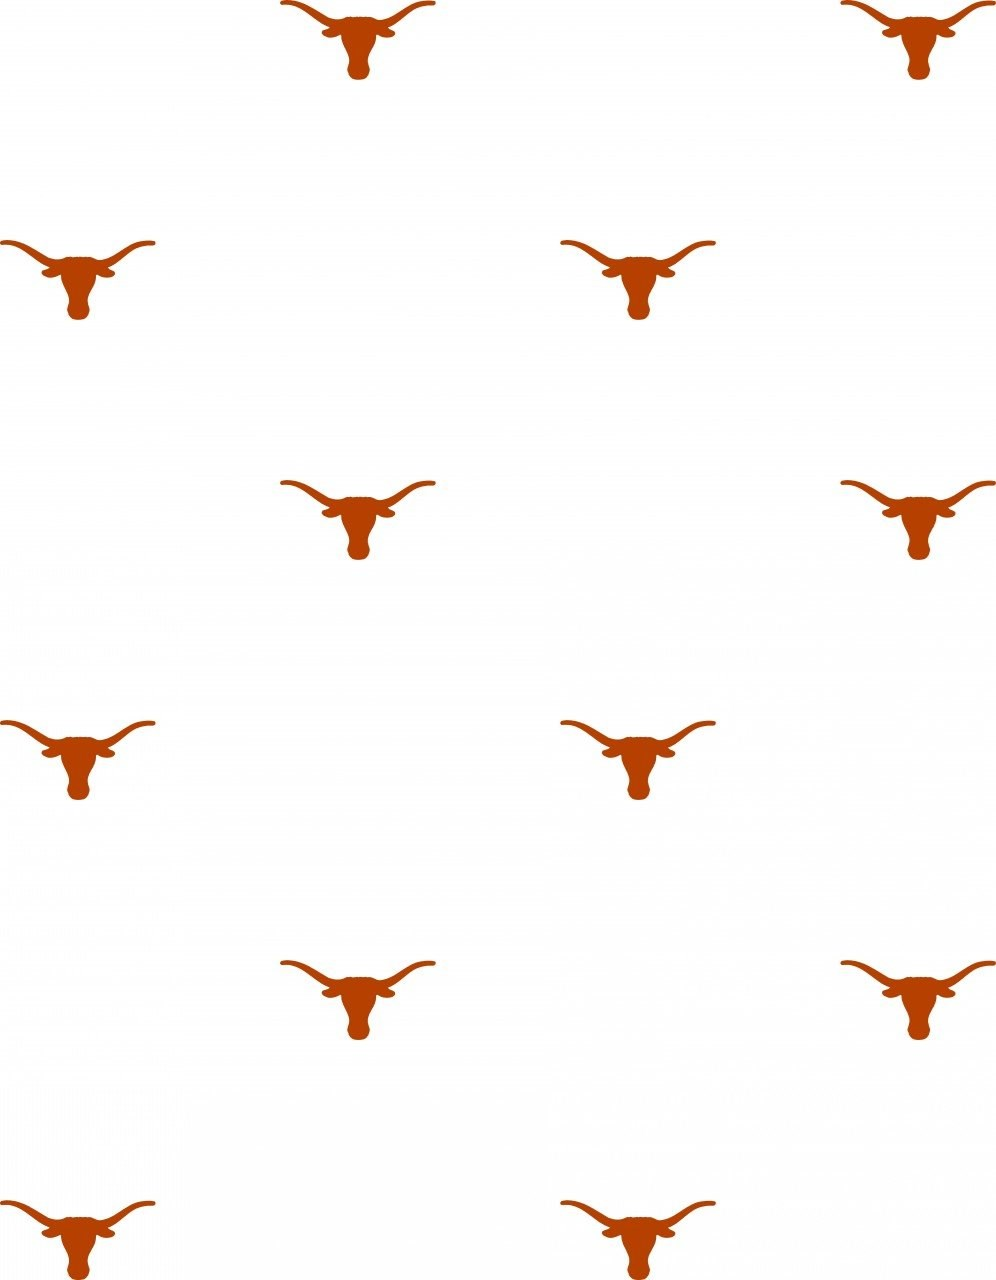 Texas longhorns logo wallpapers wallpapers zone desktop - Texas longhorns desktop background ...